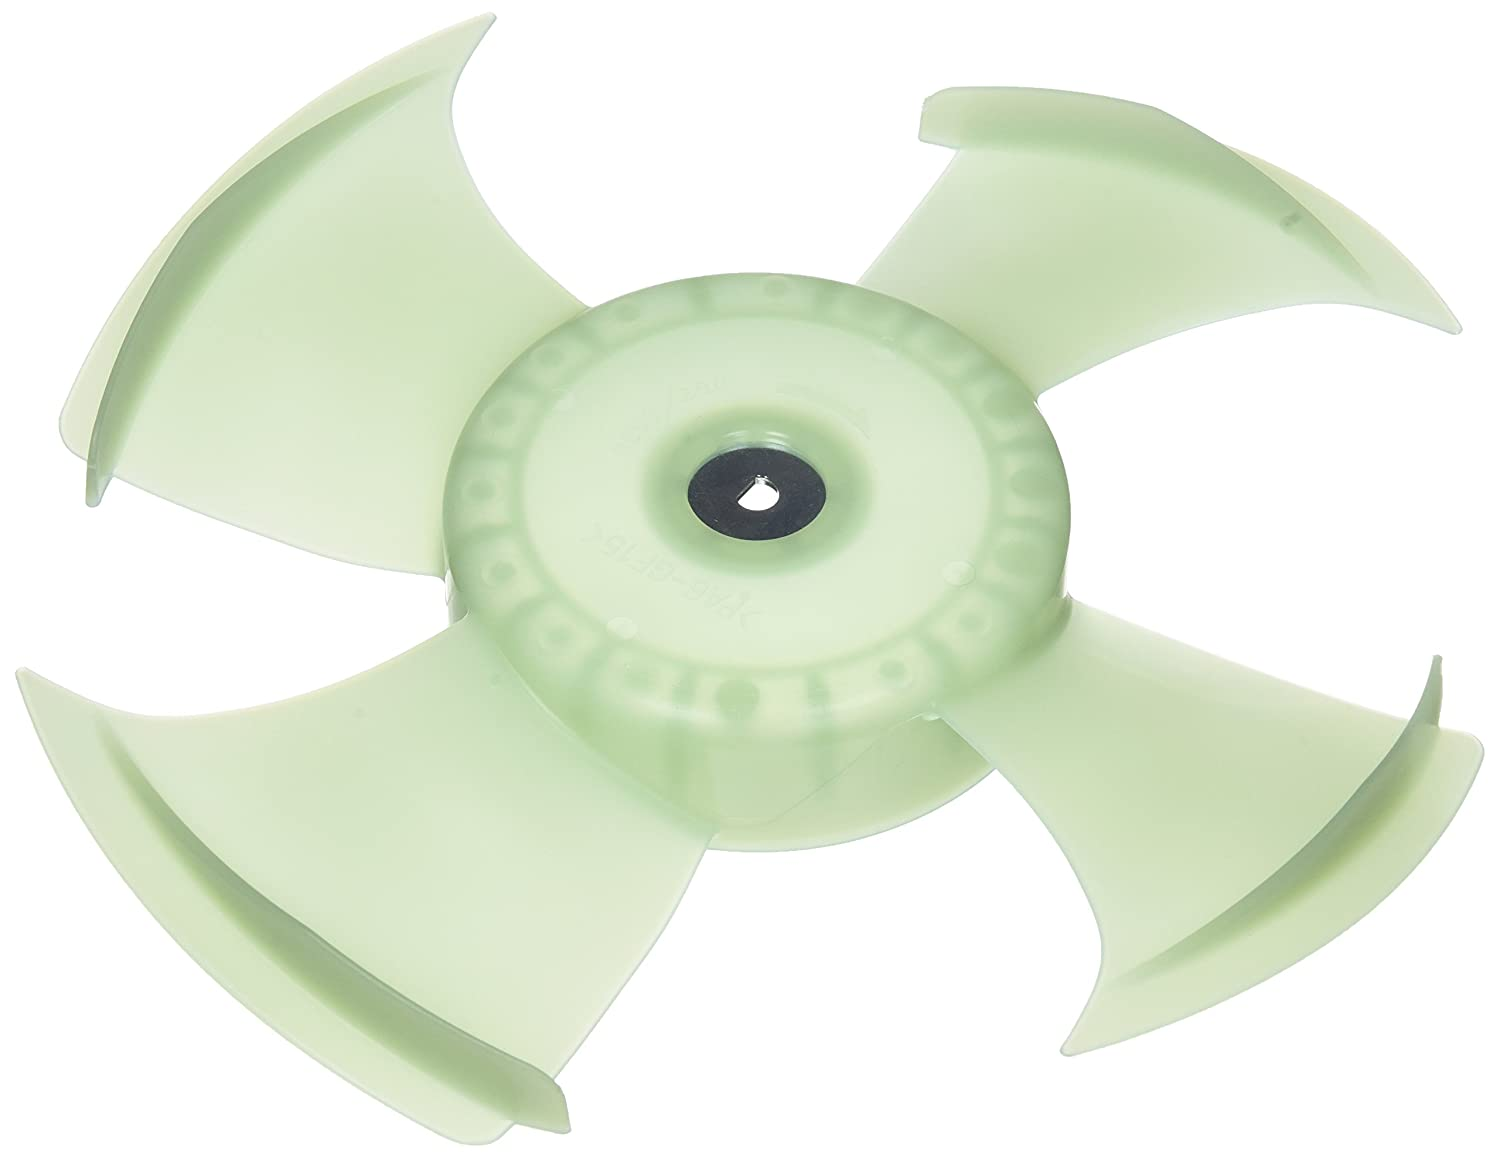 Genuine Honda Parts 38611-PAA-A01 Condenser Fan Blade